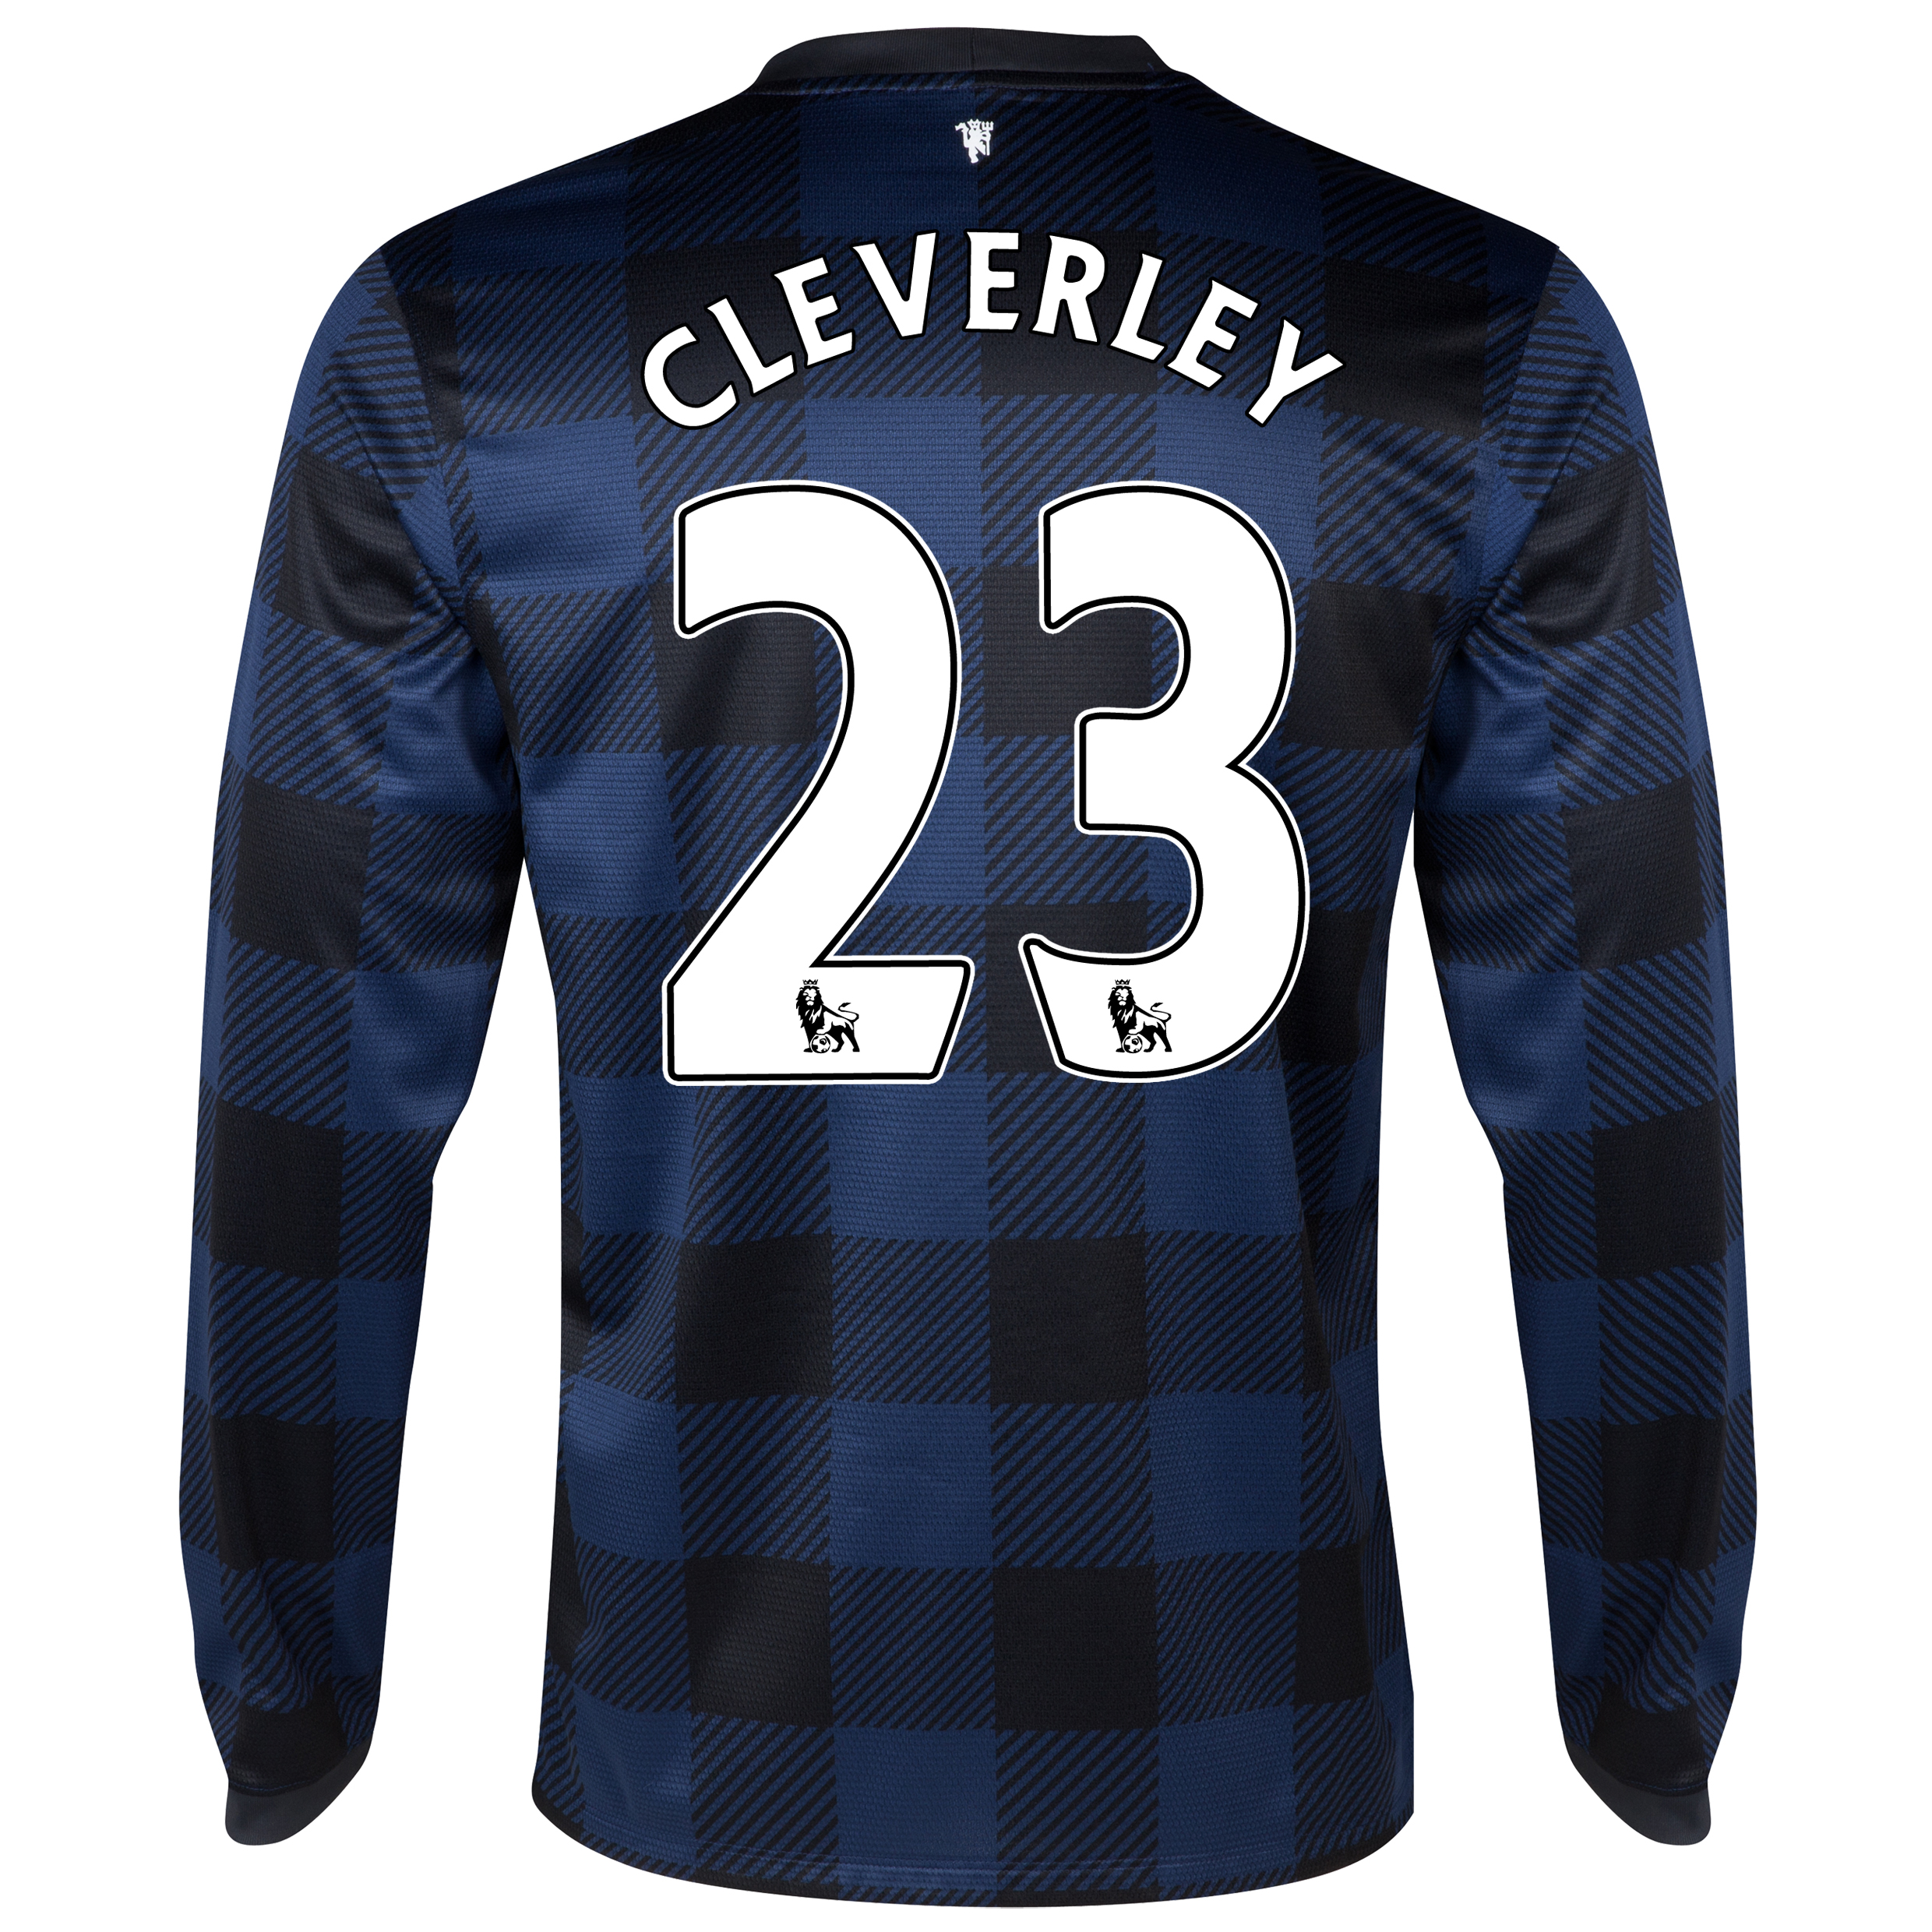 Manchester United Away Shirt 2013/14 - Long Sleeved with Cleverley 23 printing